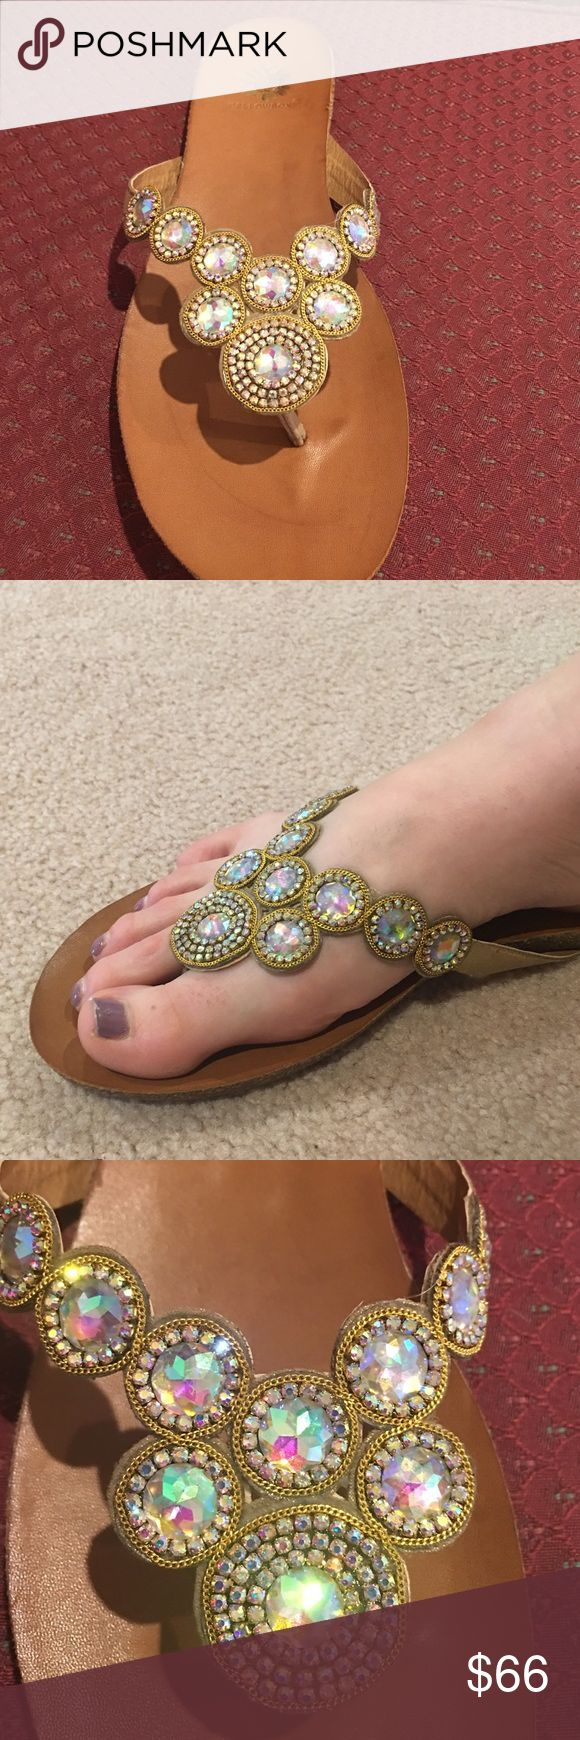 Yellowbox Nectarine embellished Gold Flip Flops Embellished uppers, flat Flip Flop Sandals Yellow Box Shoes Sandals